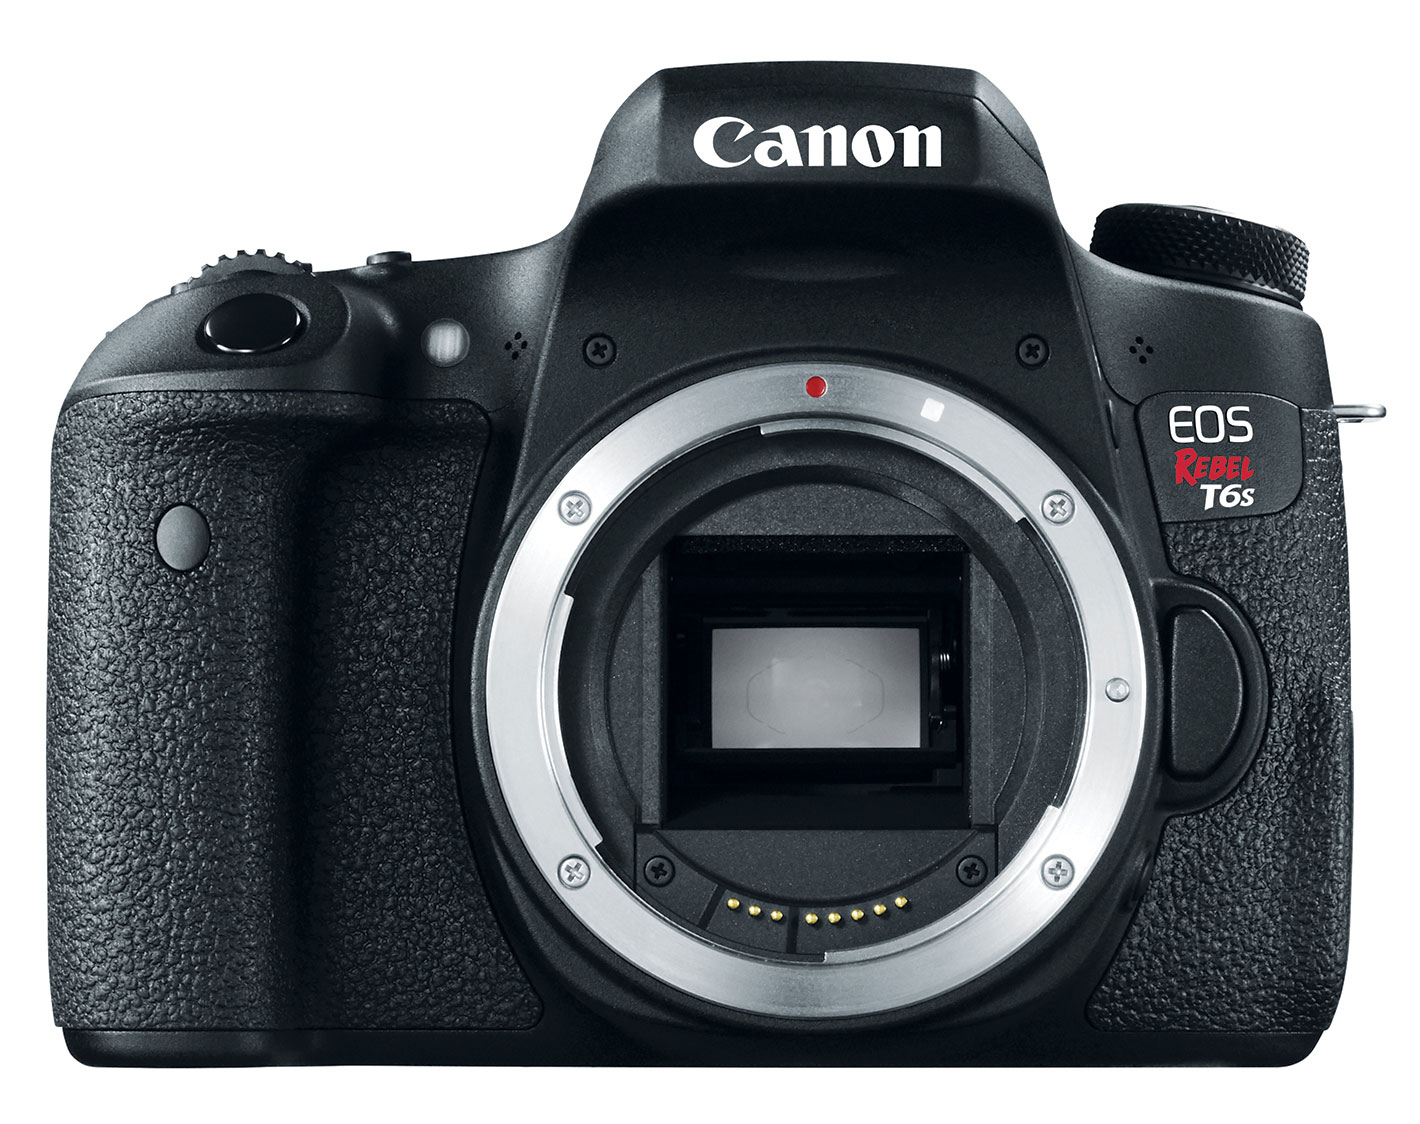 Canon Rebel T6s and T6i DSLRs Pack Faster Autofocus Tech for